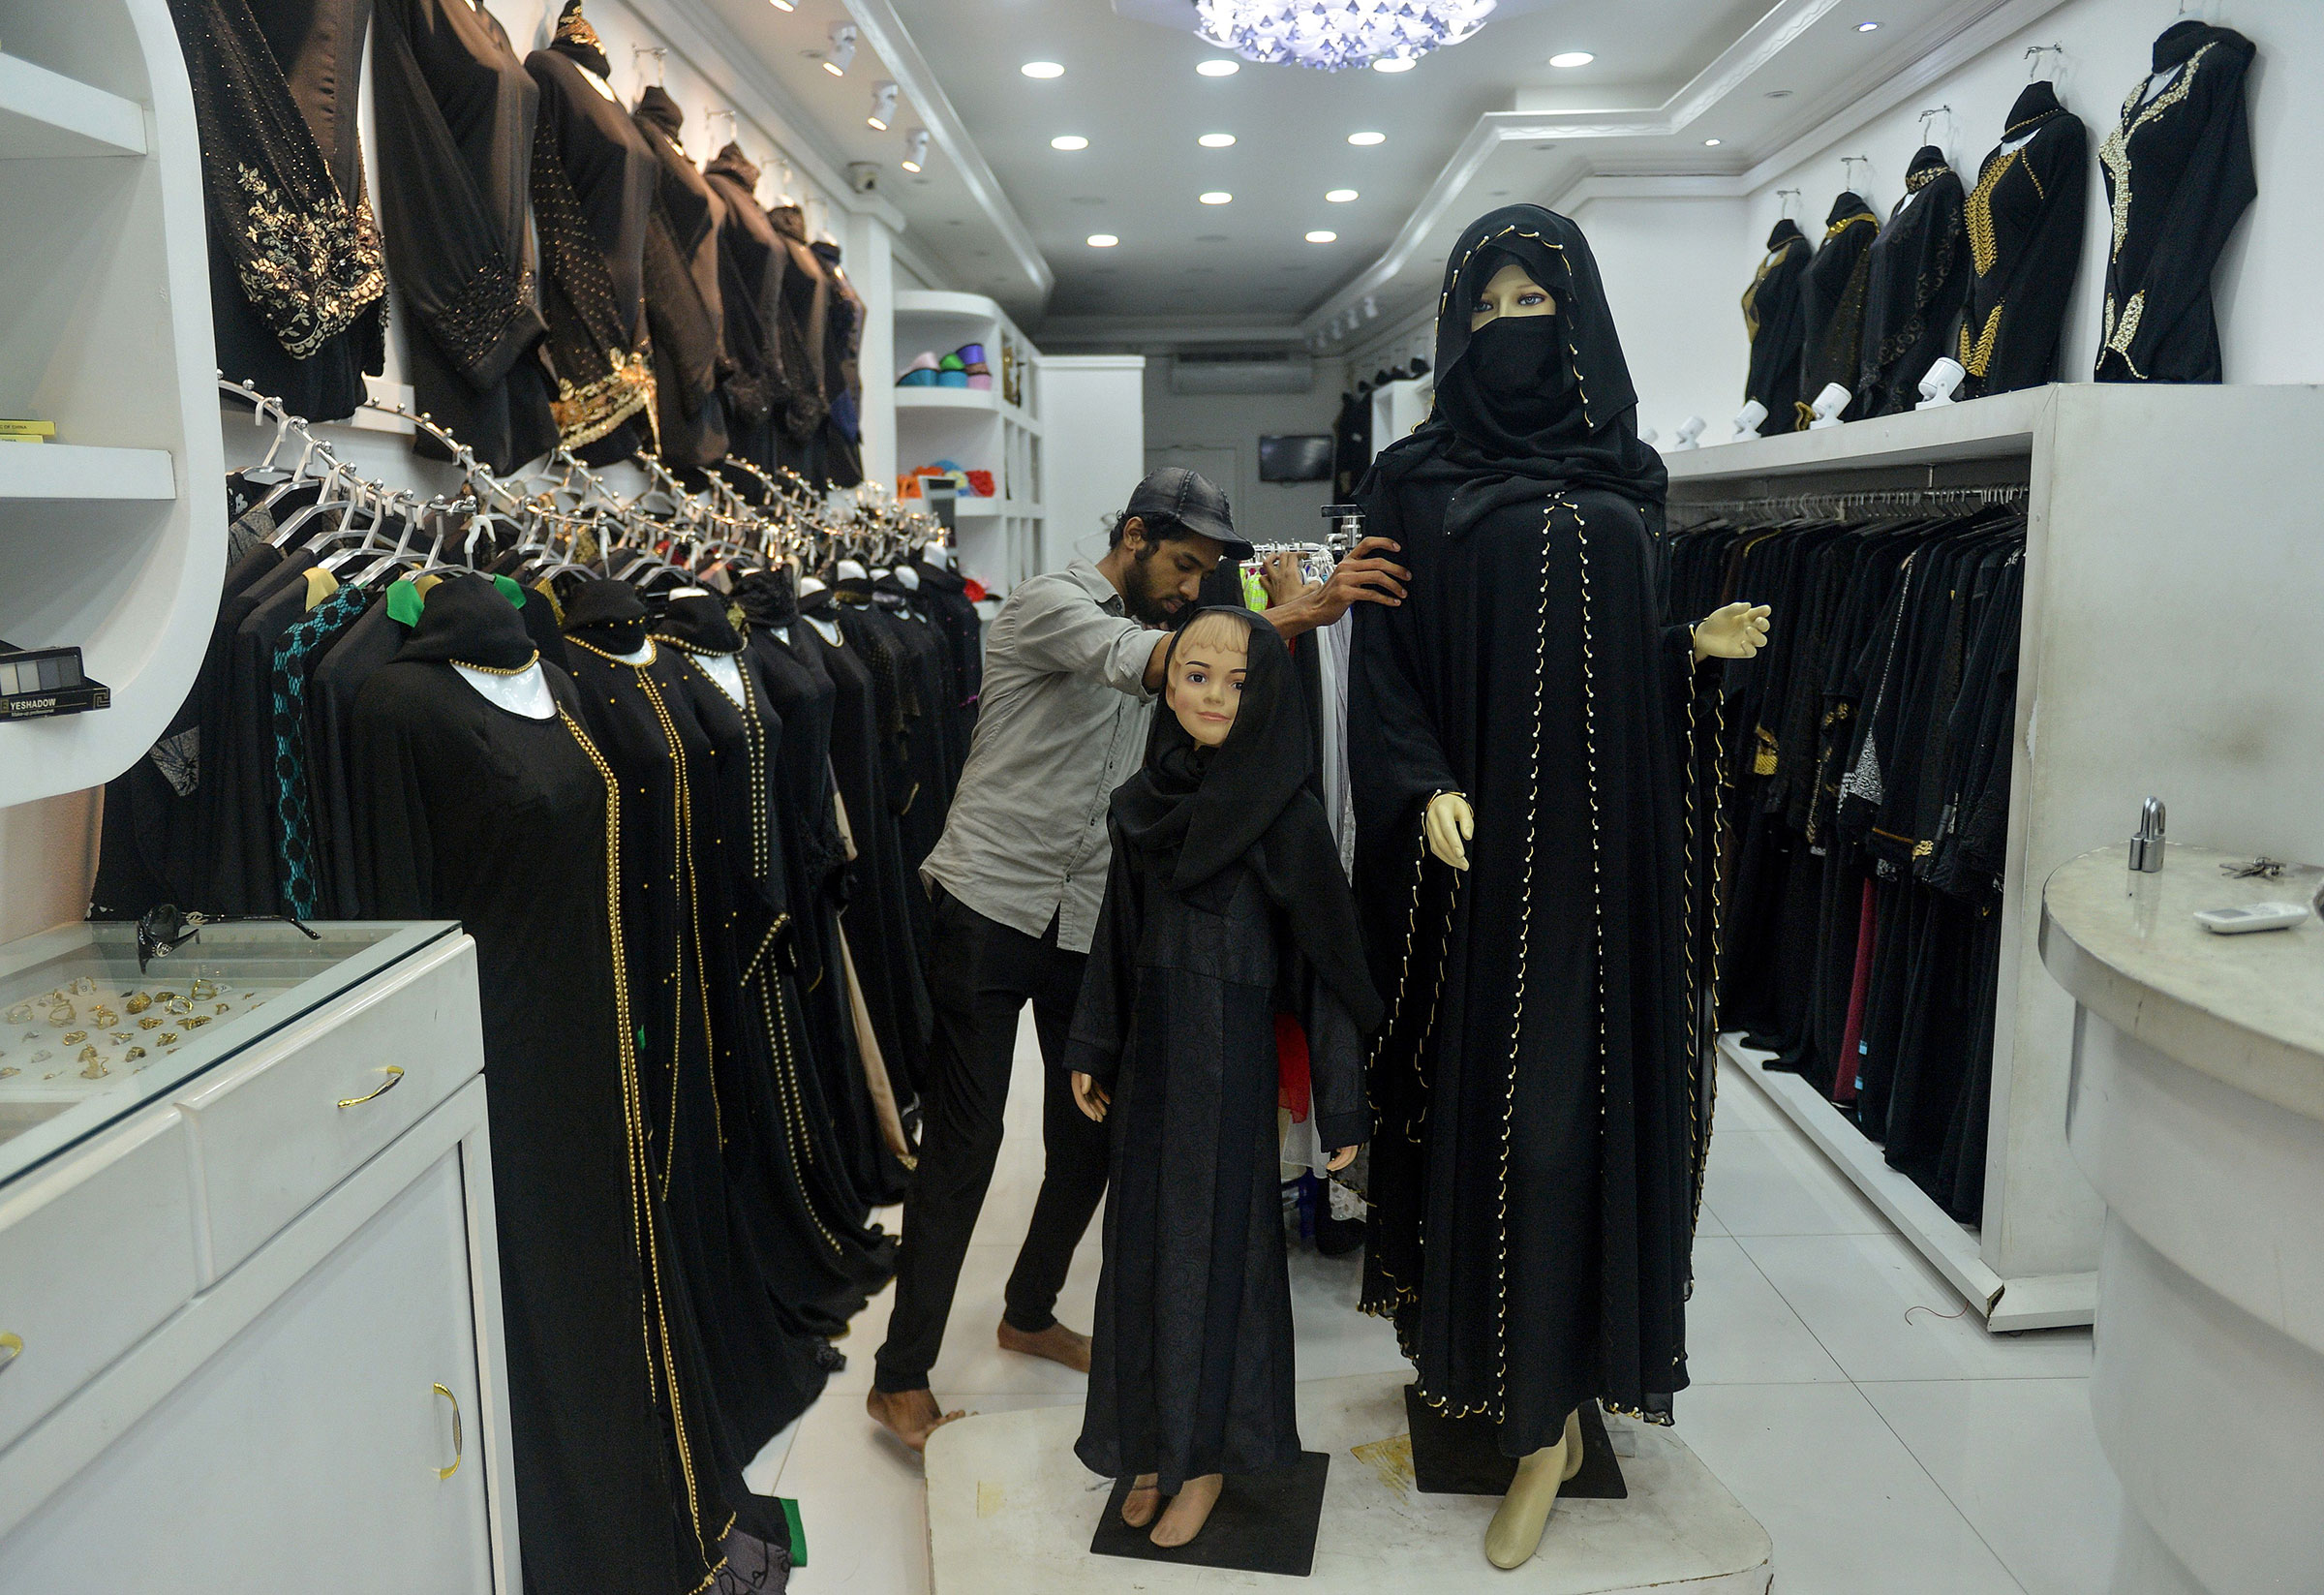 A Sri Lankan vendor shows a full face veil, called a niqab, at a shop selling clothes for Muslim women in Colombo on April 30, 2019. Religious tensions and a government ban on covering the face since the Easter Sunday suicide attacks have forced conservative Muslim women in Sri Lanka to shun veils, head scarves and long robes in public.